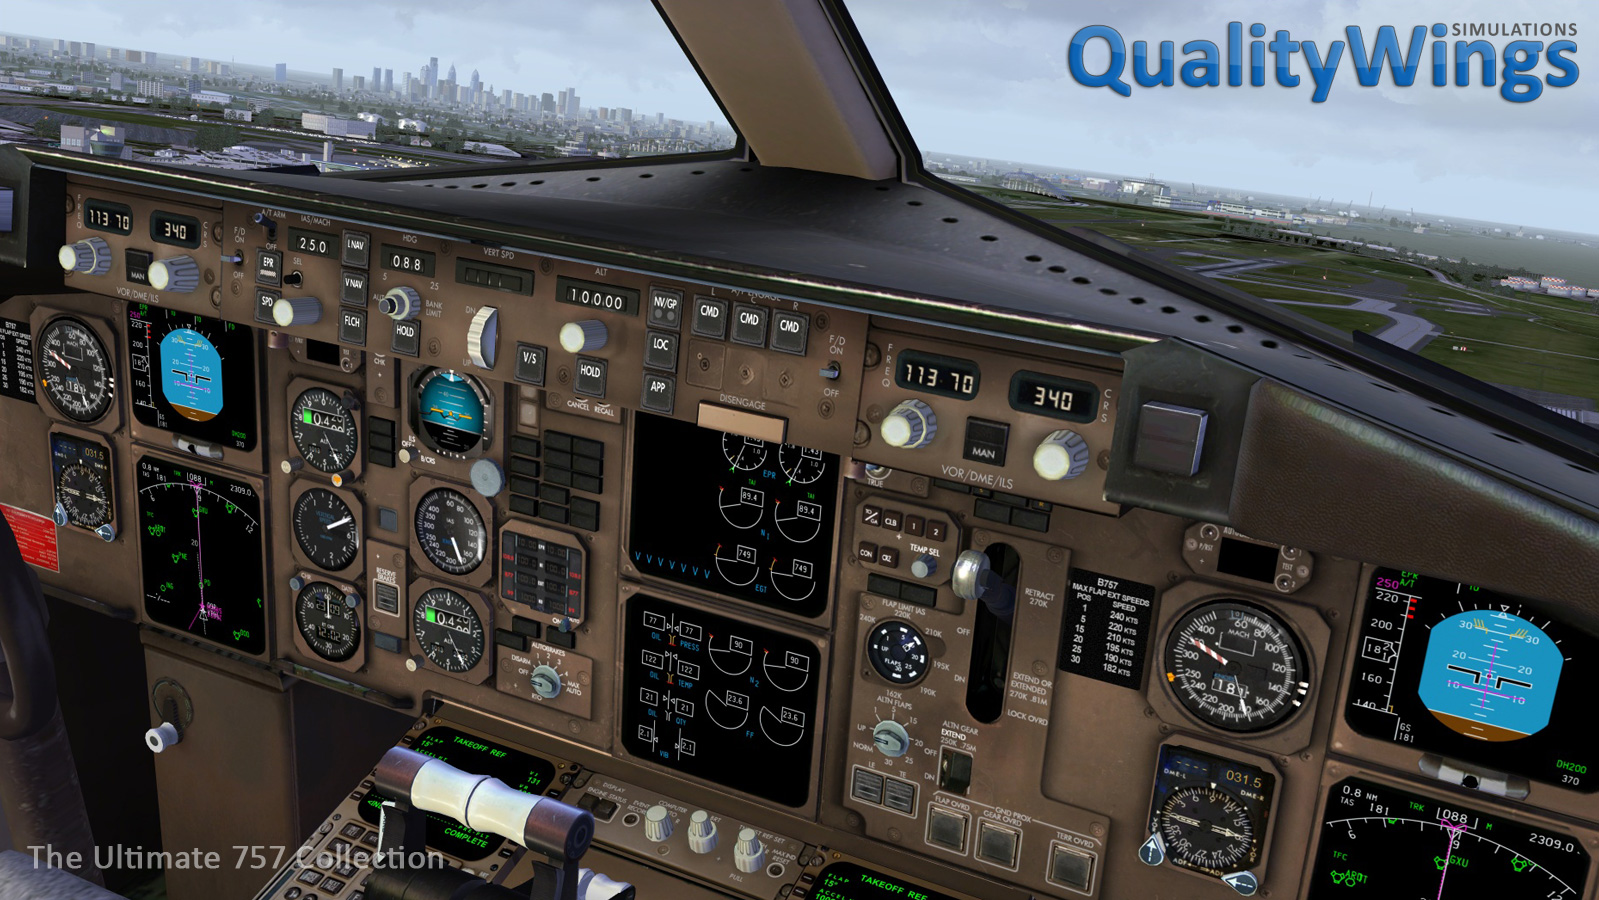 Flight1 - QualityWings Ultimate 757 Collection for P3Dv4